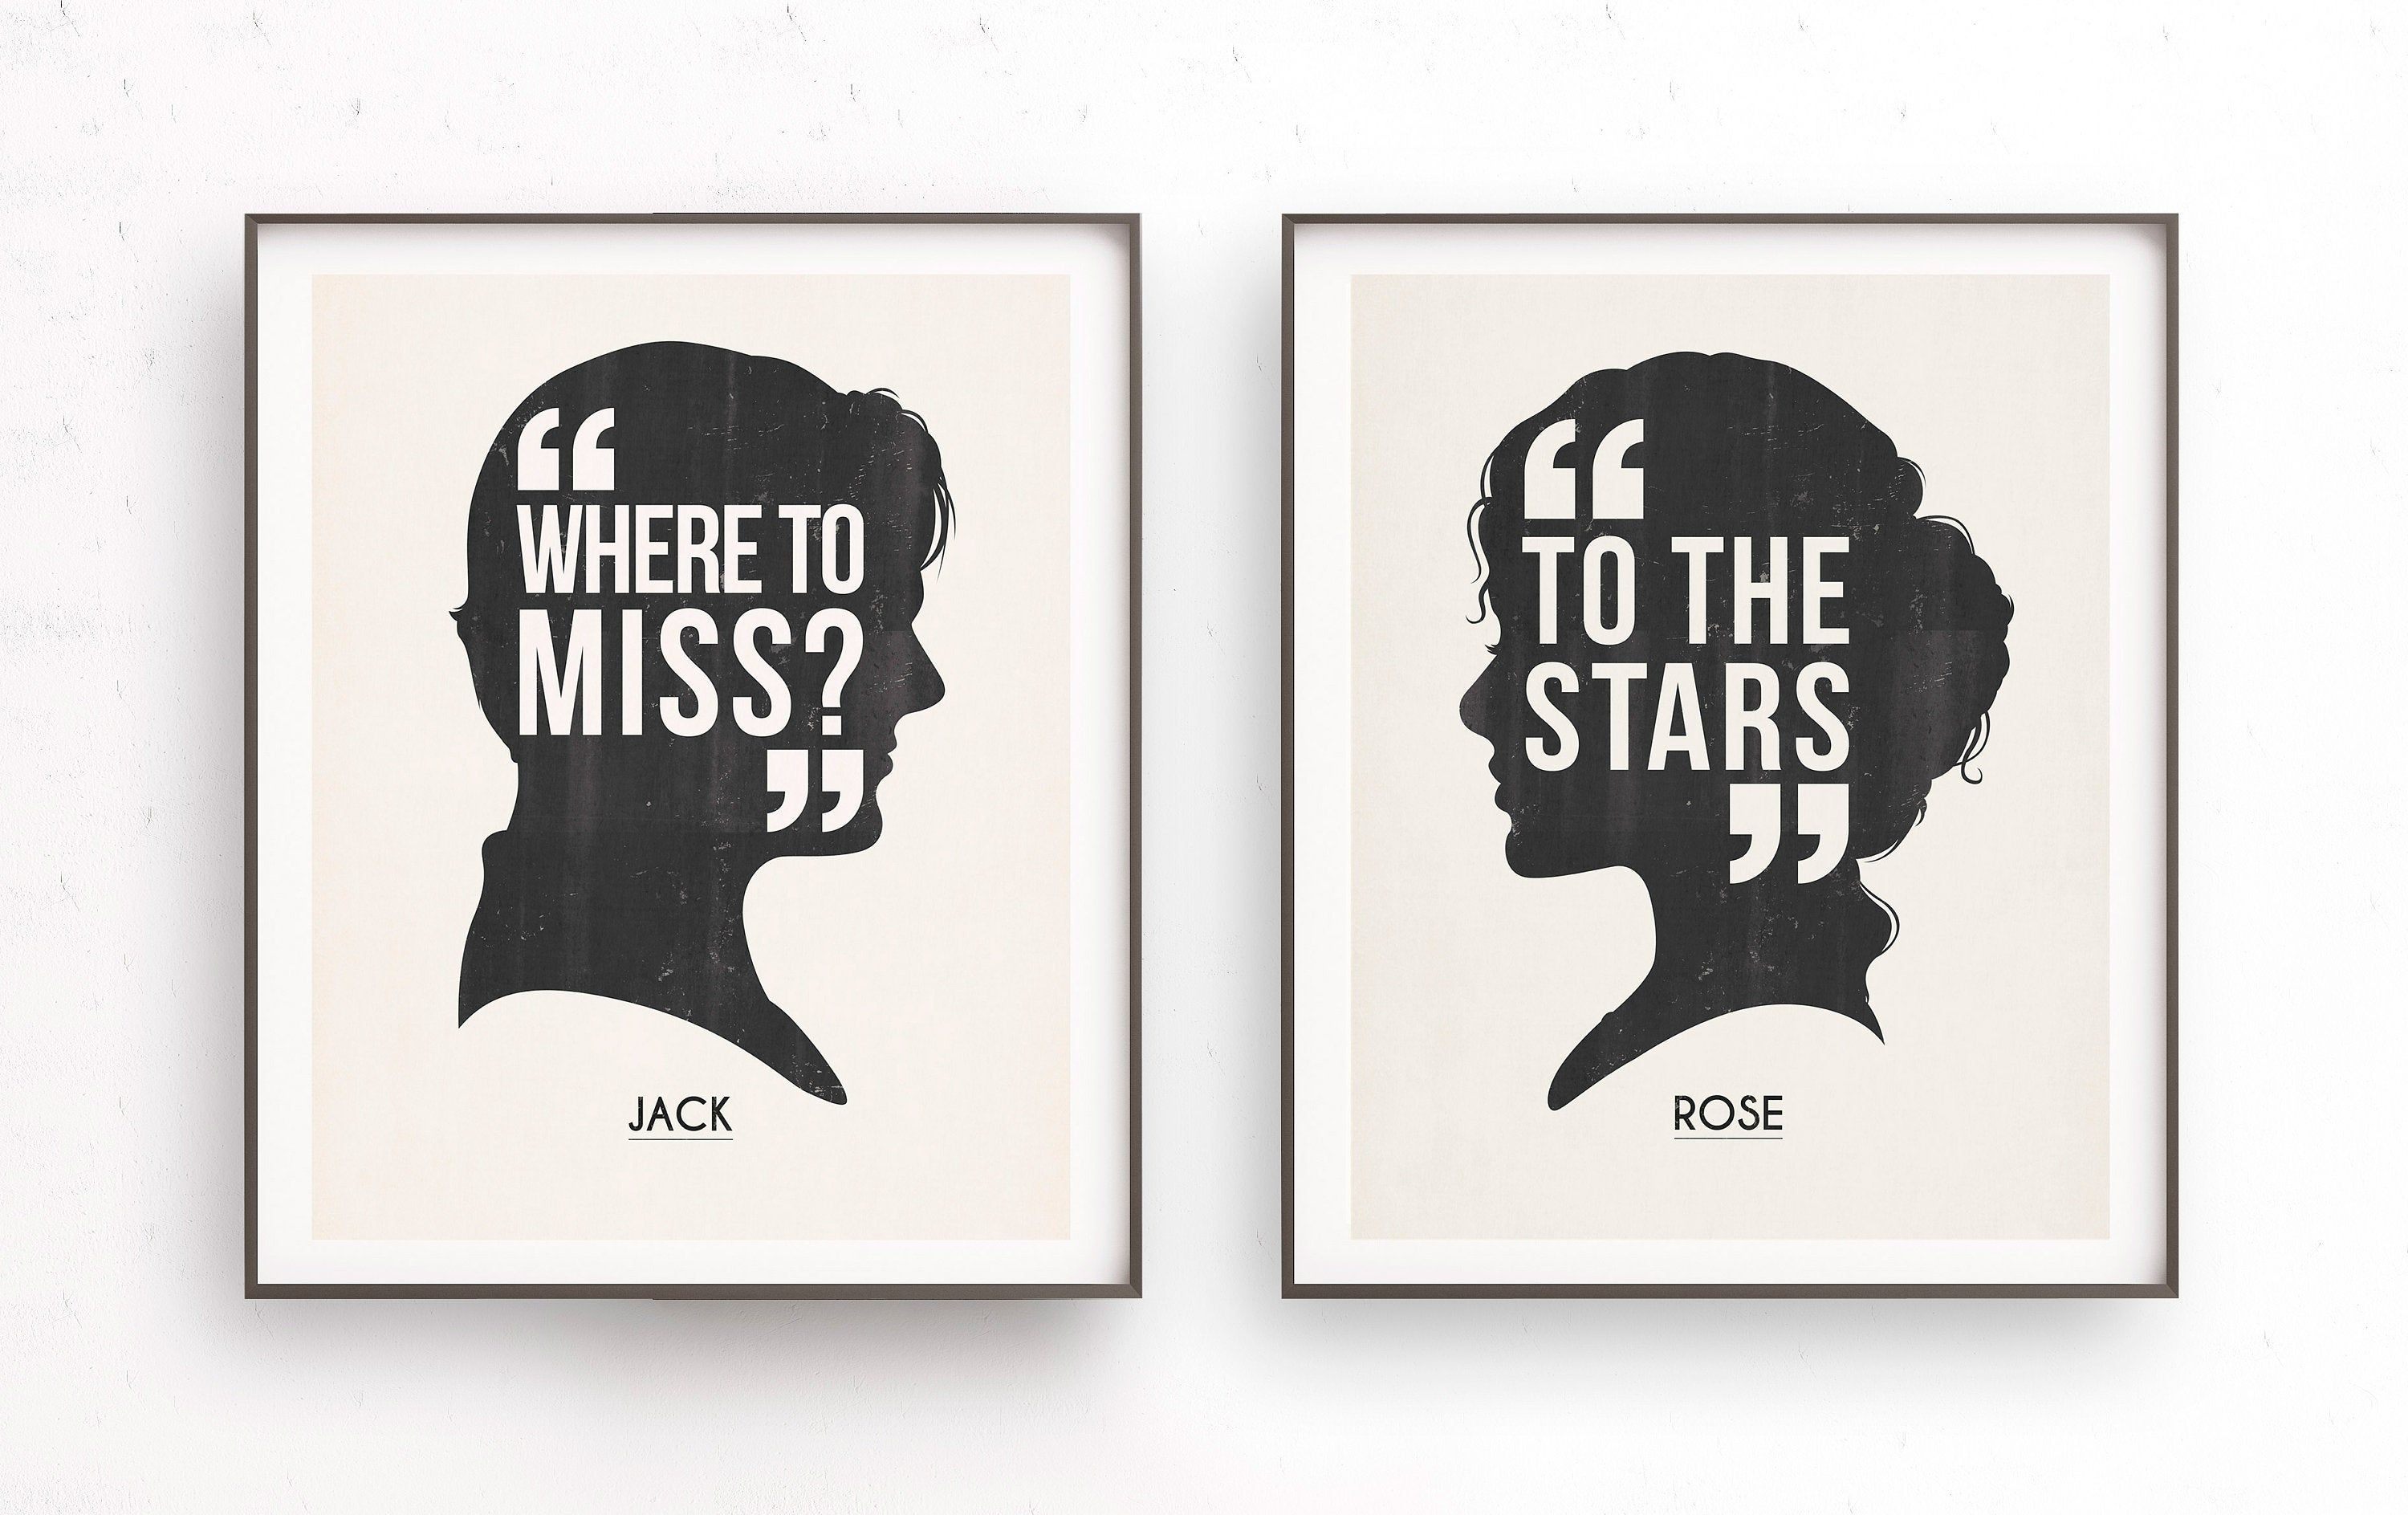 Jack and Rose art, Titanic movie, Where to miss, To the starts, Love quote gift, Jack Dawson, Rose Dawson, Girlfriend gift, Ill never let go